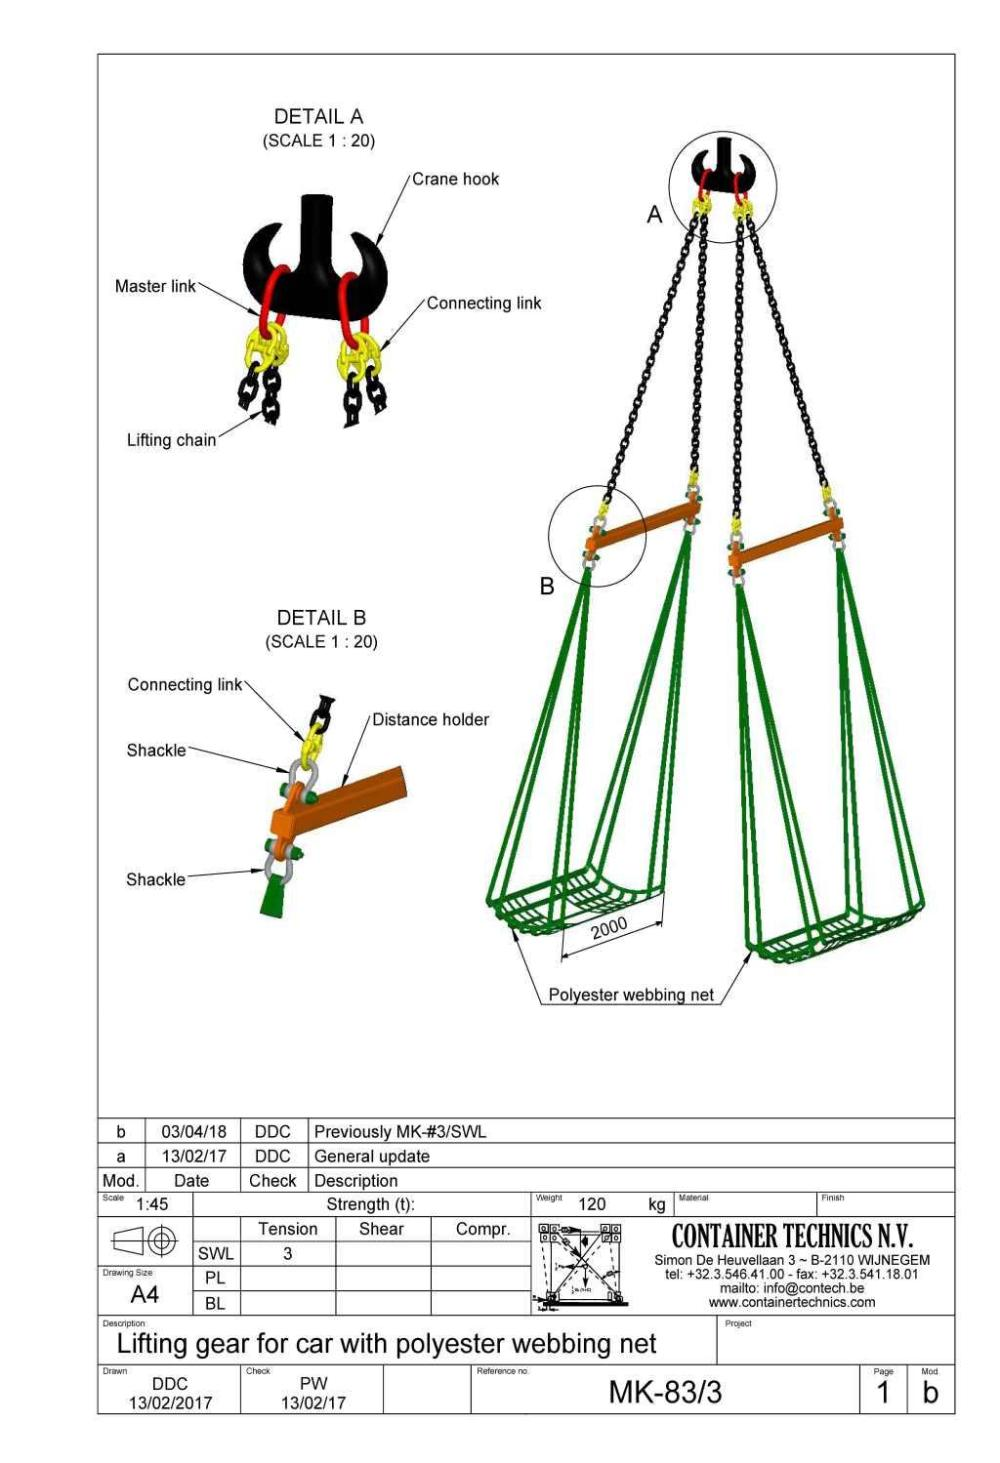 medium resolution of mk 83 car lifting gear with polyester net swl 3t